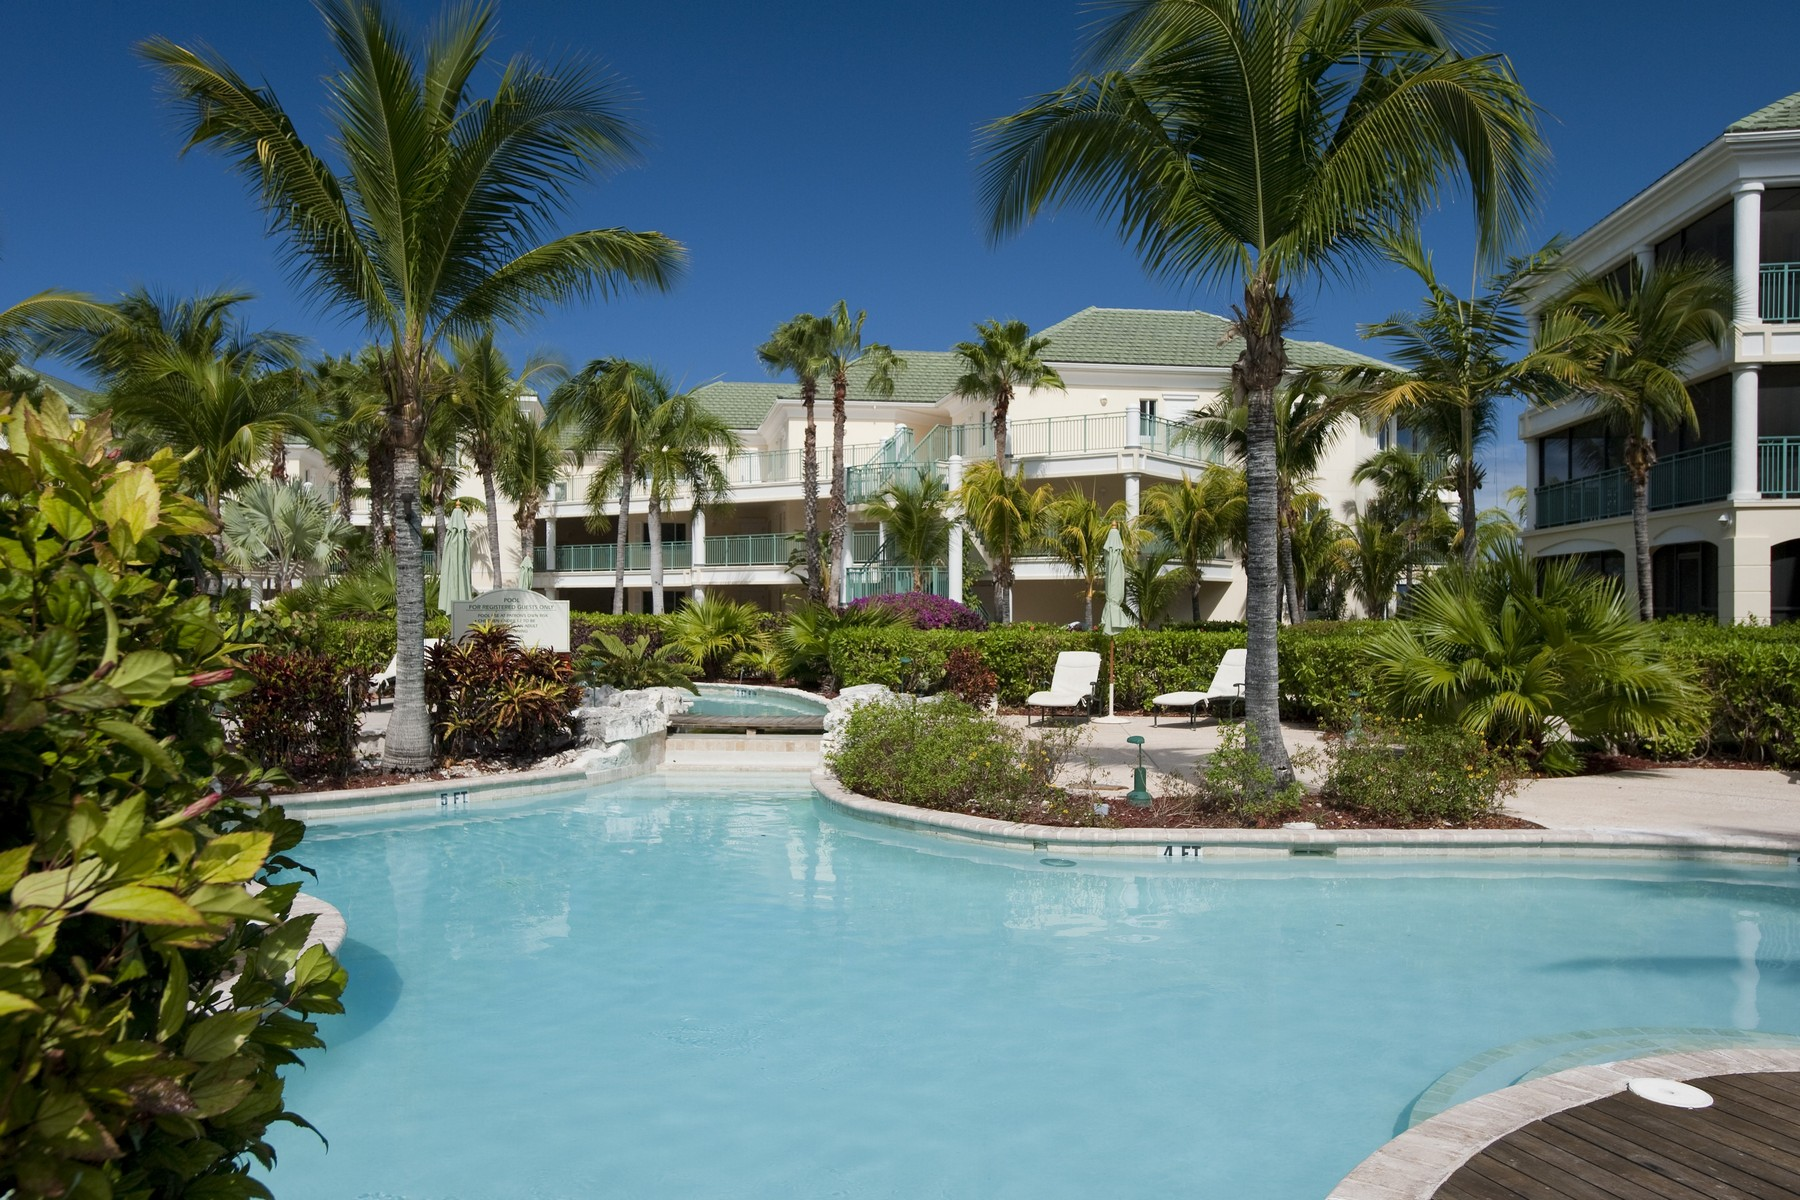 Condominium for Sale at The Sands at Grace Bay - Suite 6301 The Sands On Grace Bay, Grace Bay, Providenciales Turks And Caicos Islands